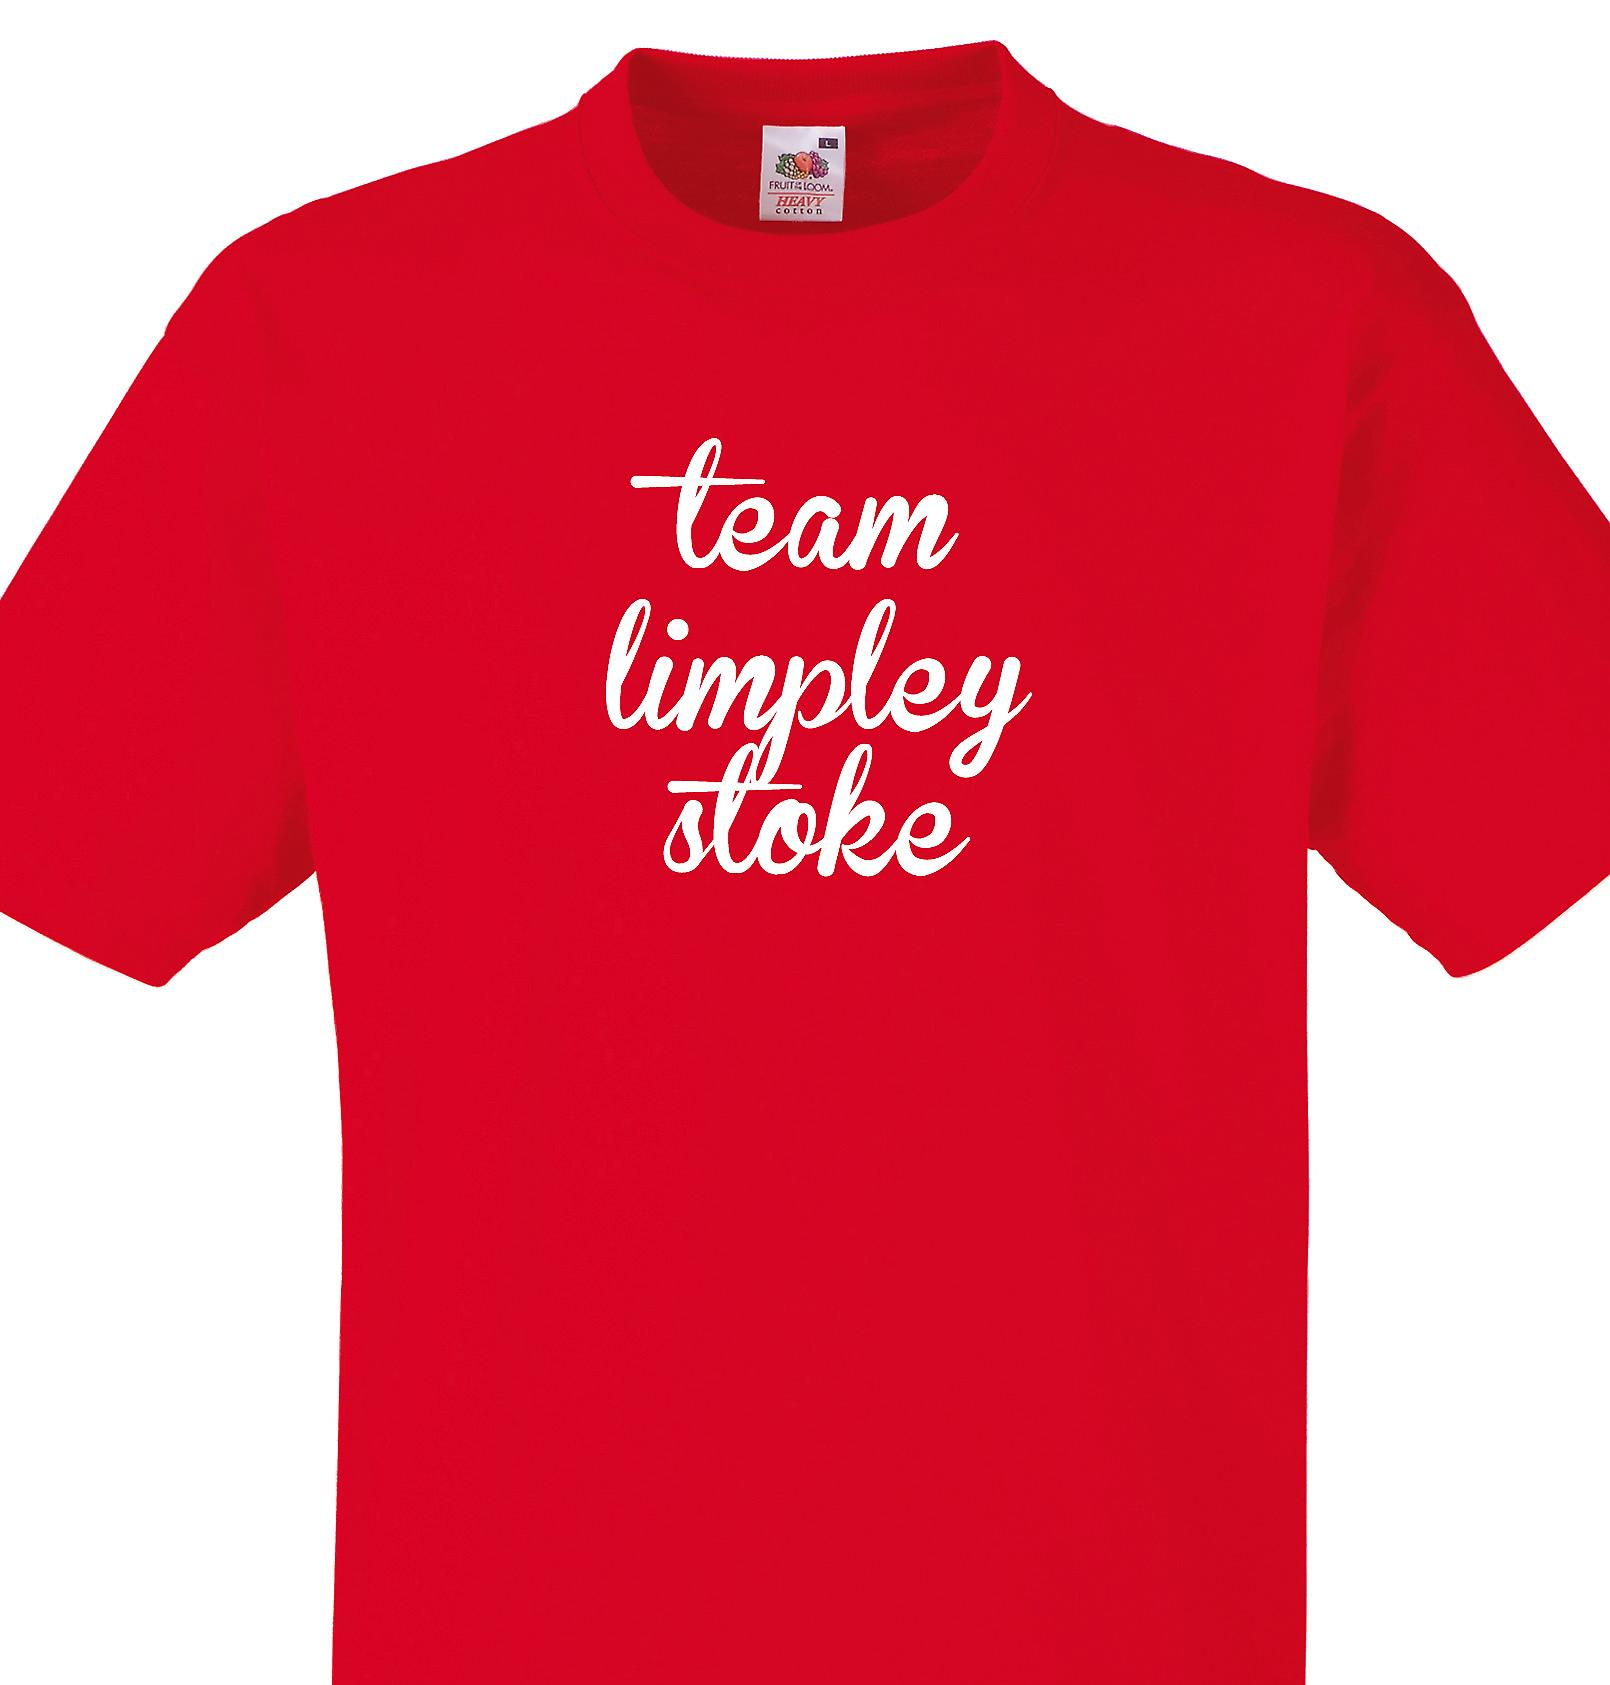 Team Limpley stoke Red T shirt